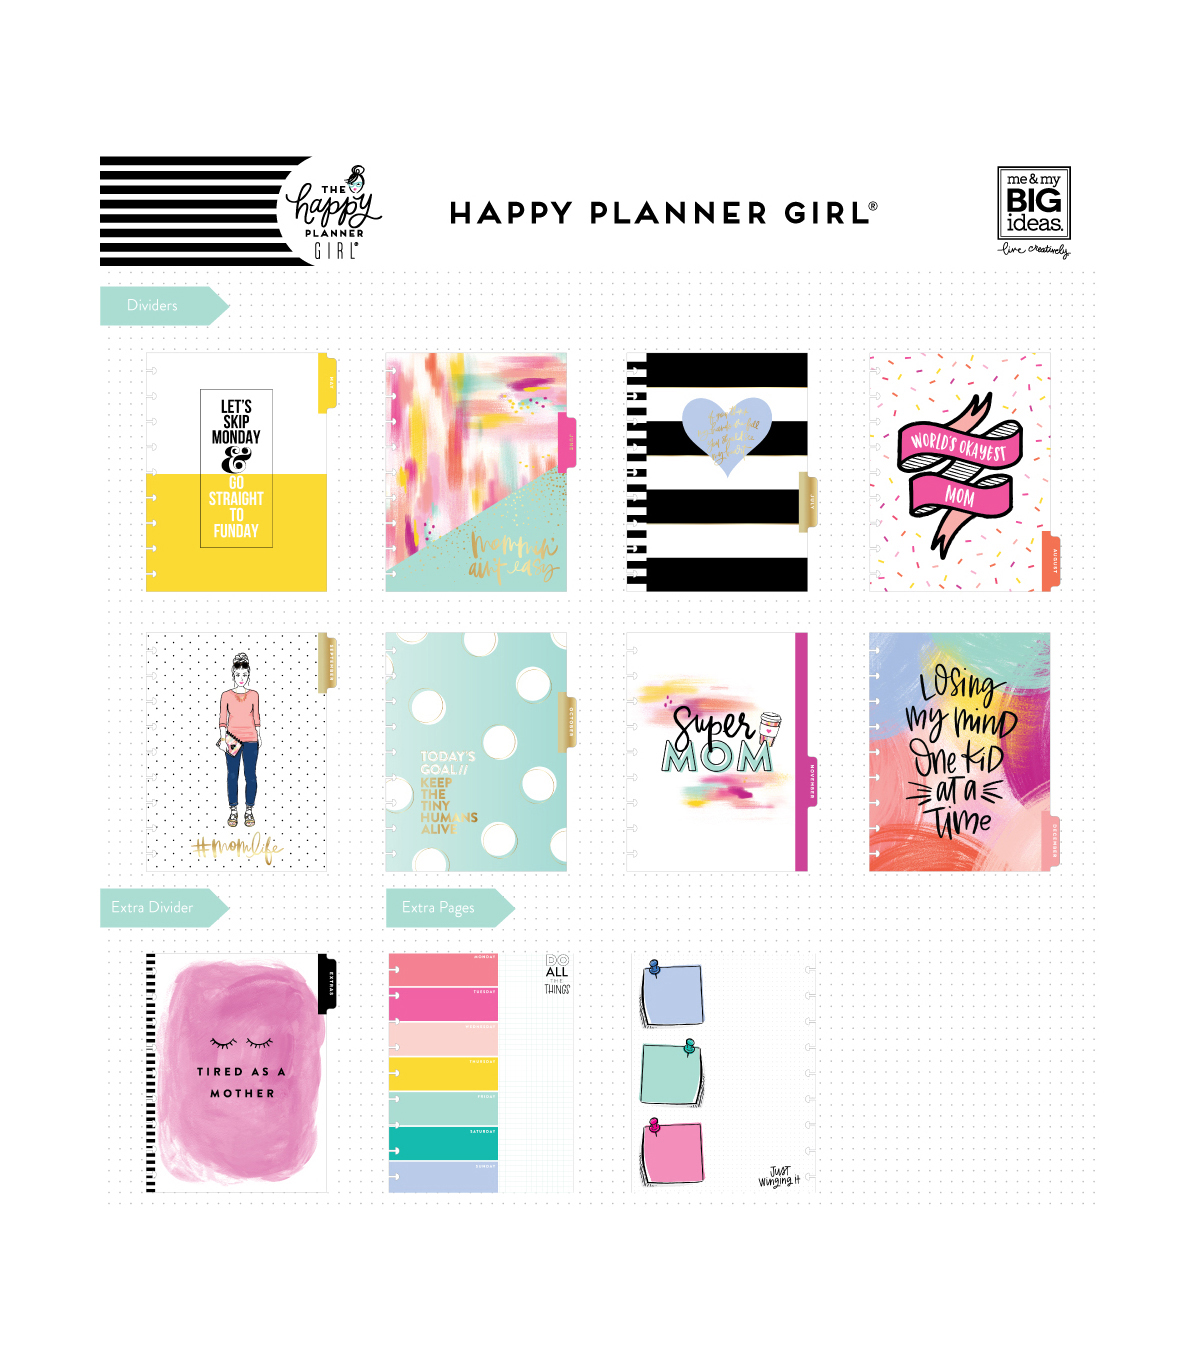 The Happy Planner Girl 12 Month Planner-Super Mom